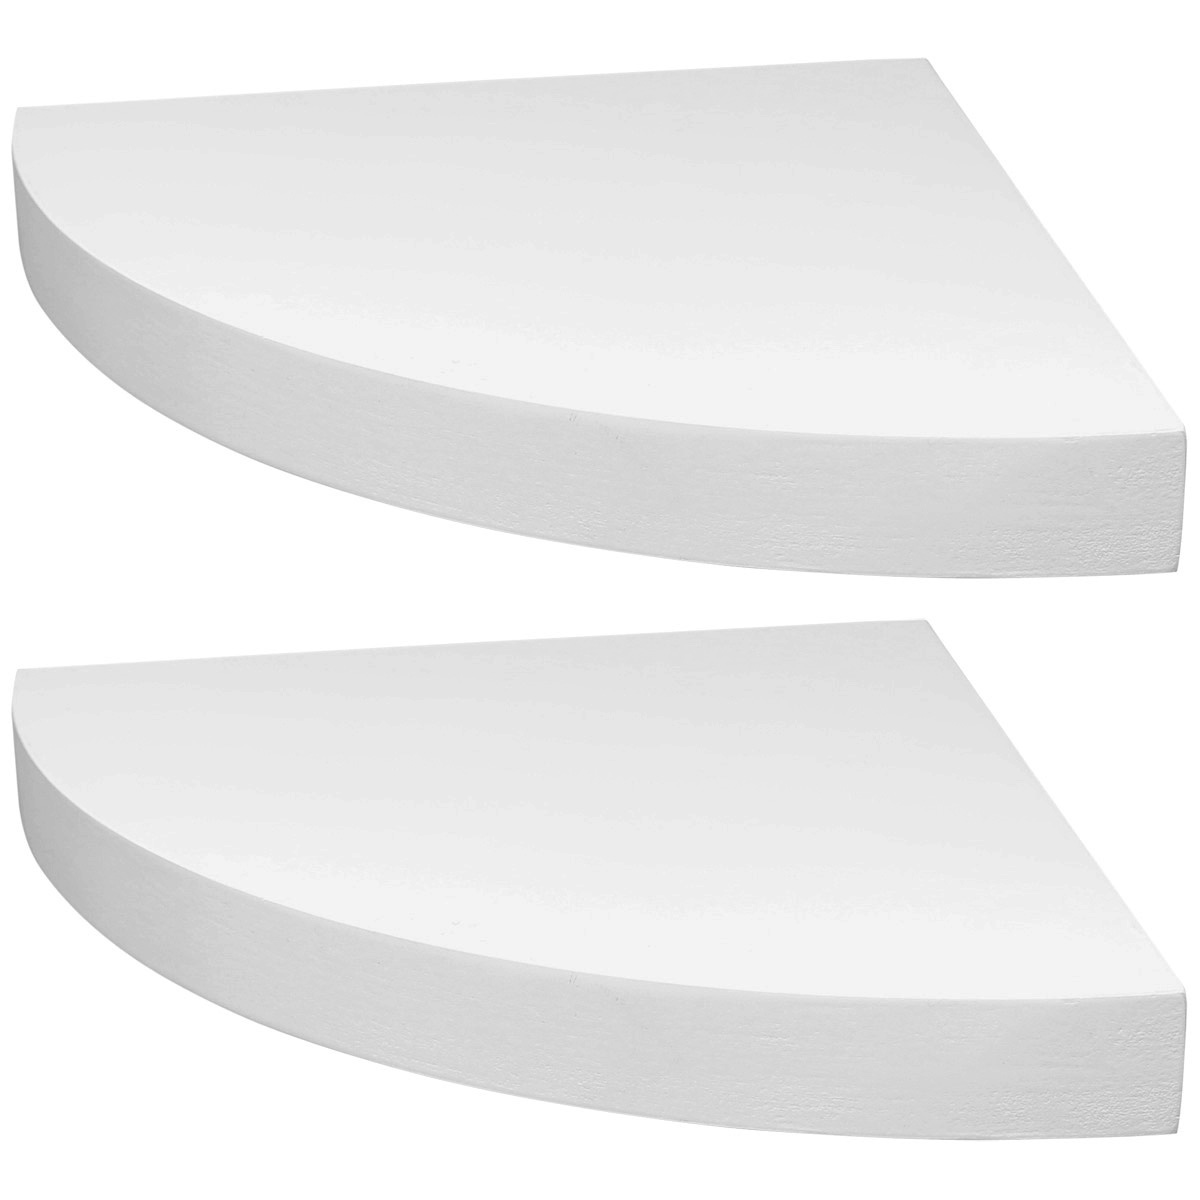 White Wood Wall Shelves Hartleys Set Of 2 White Corner Wooden Curved Floating Wall